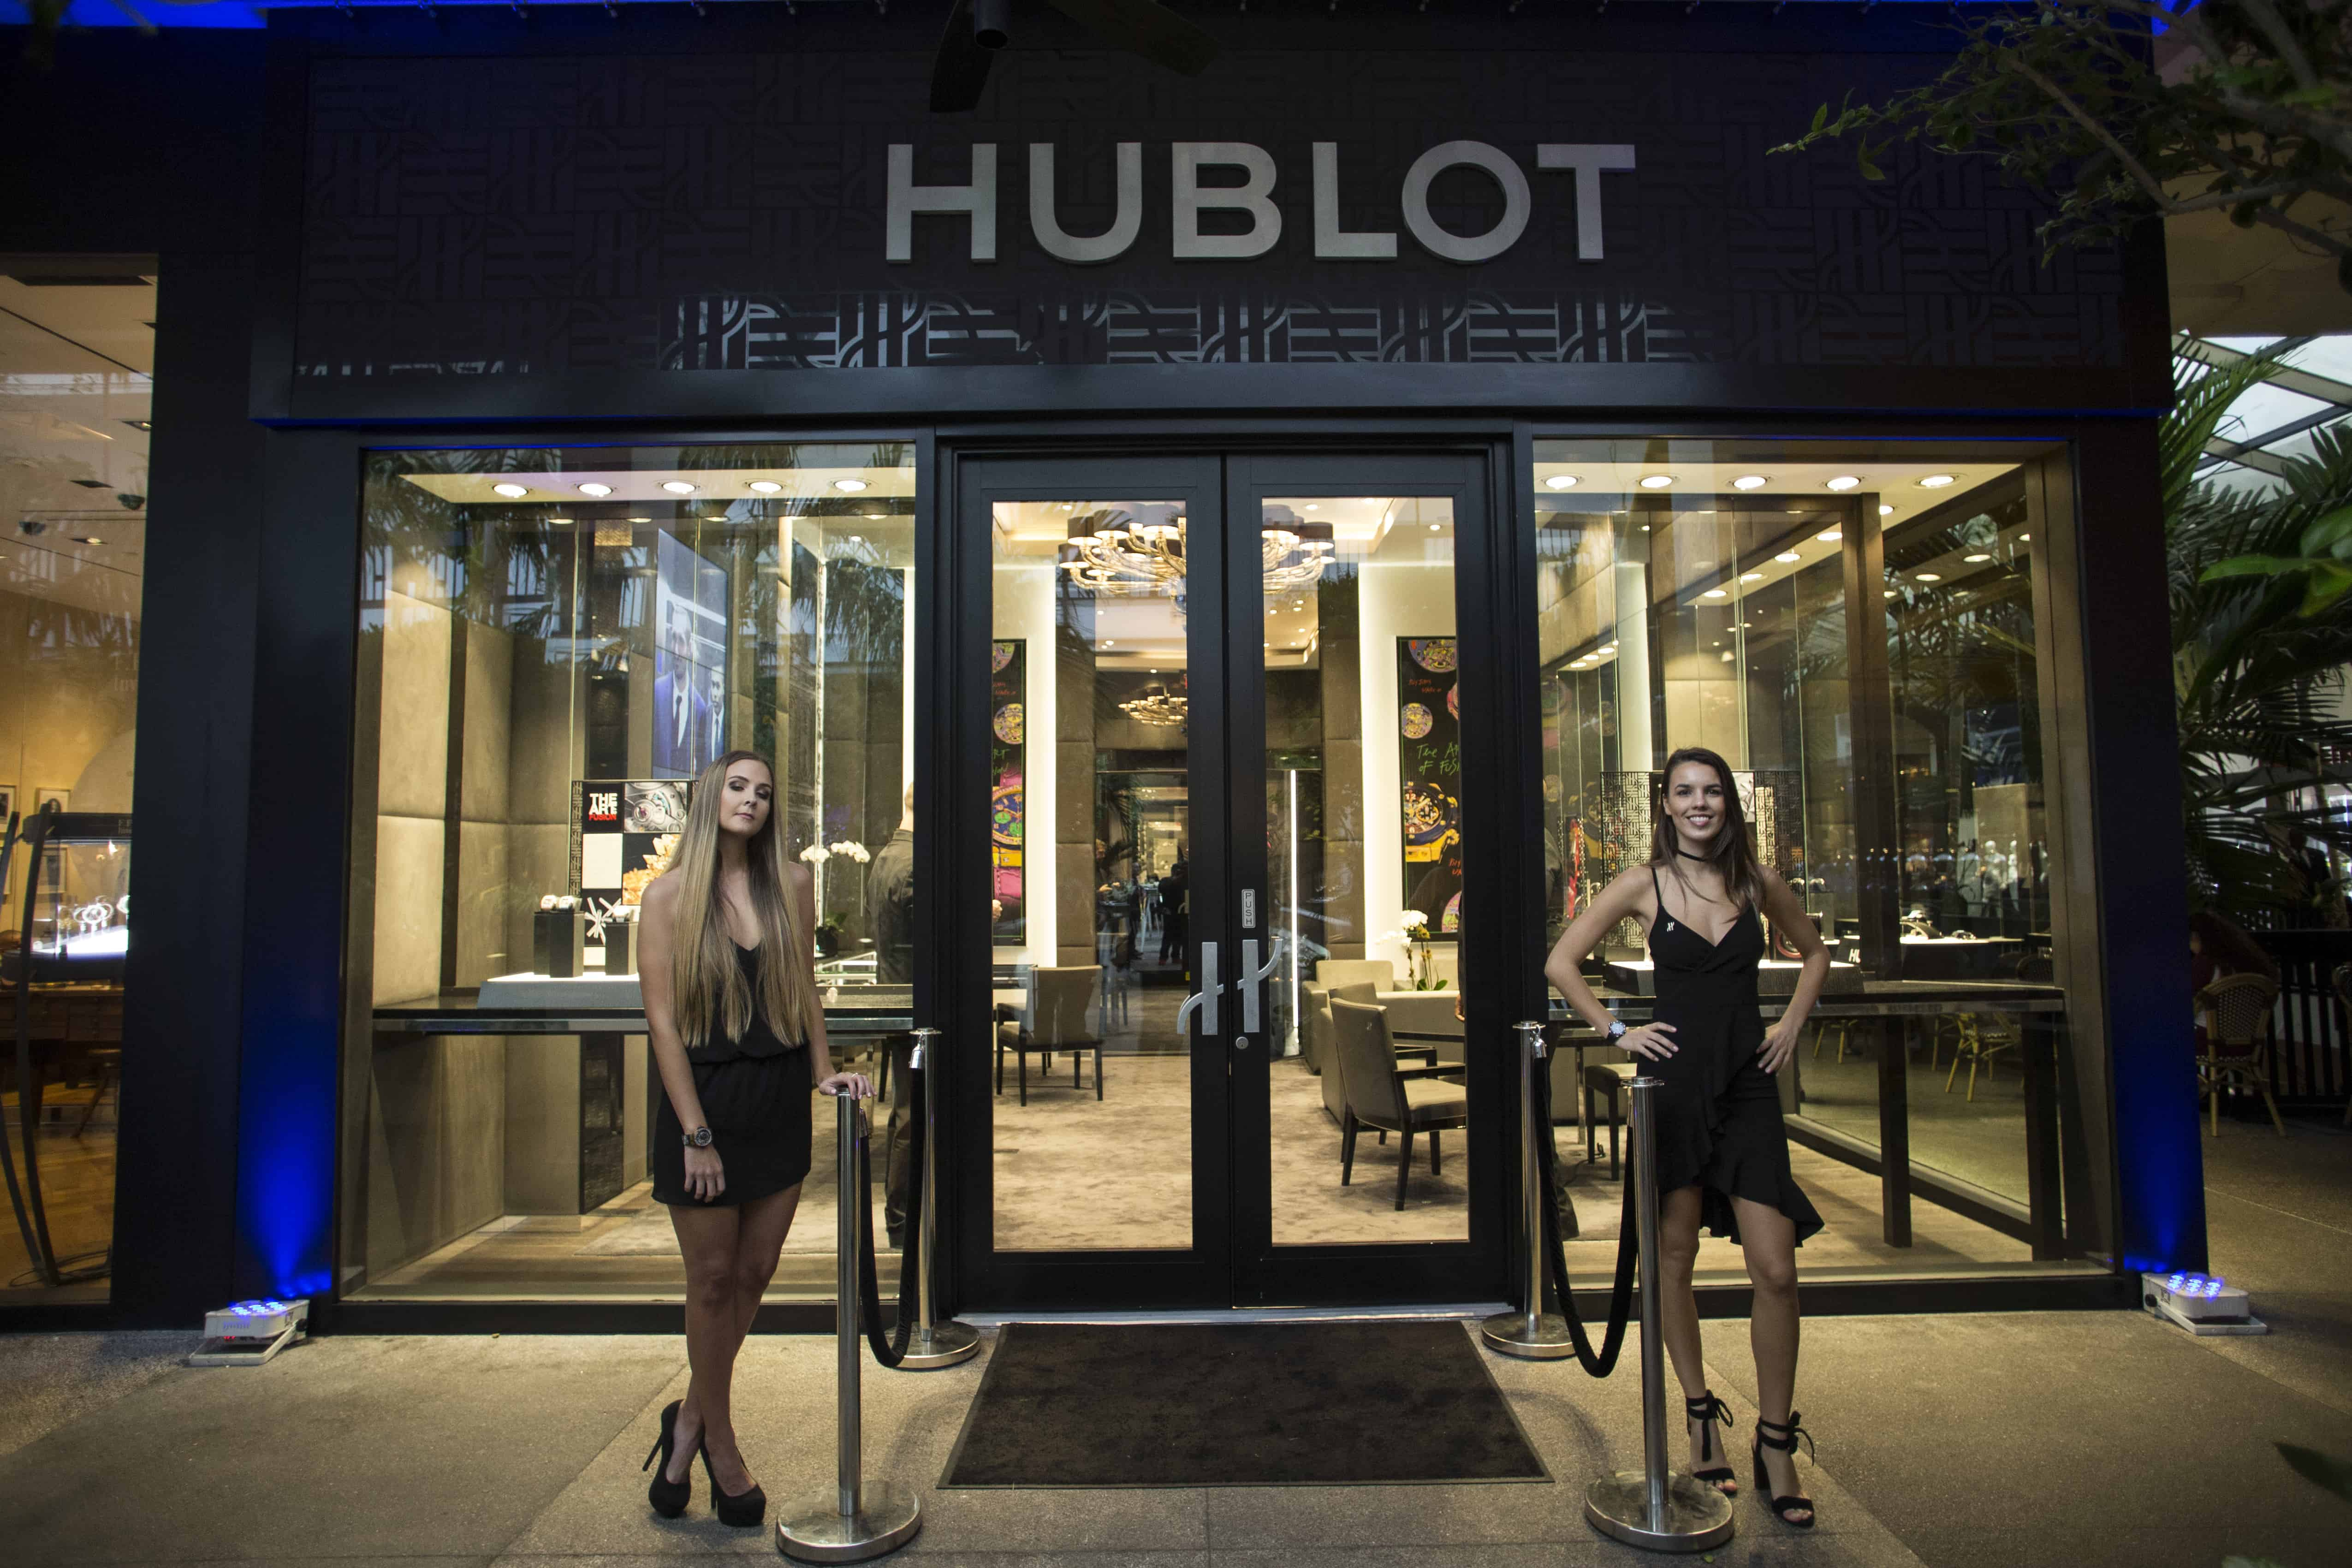 HublotBalHarbour - What happens when Hublot and Best Buddies team up? Just watch!